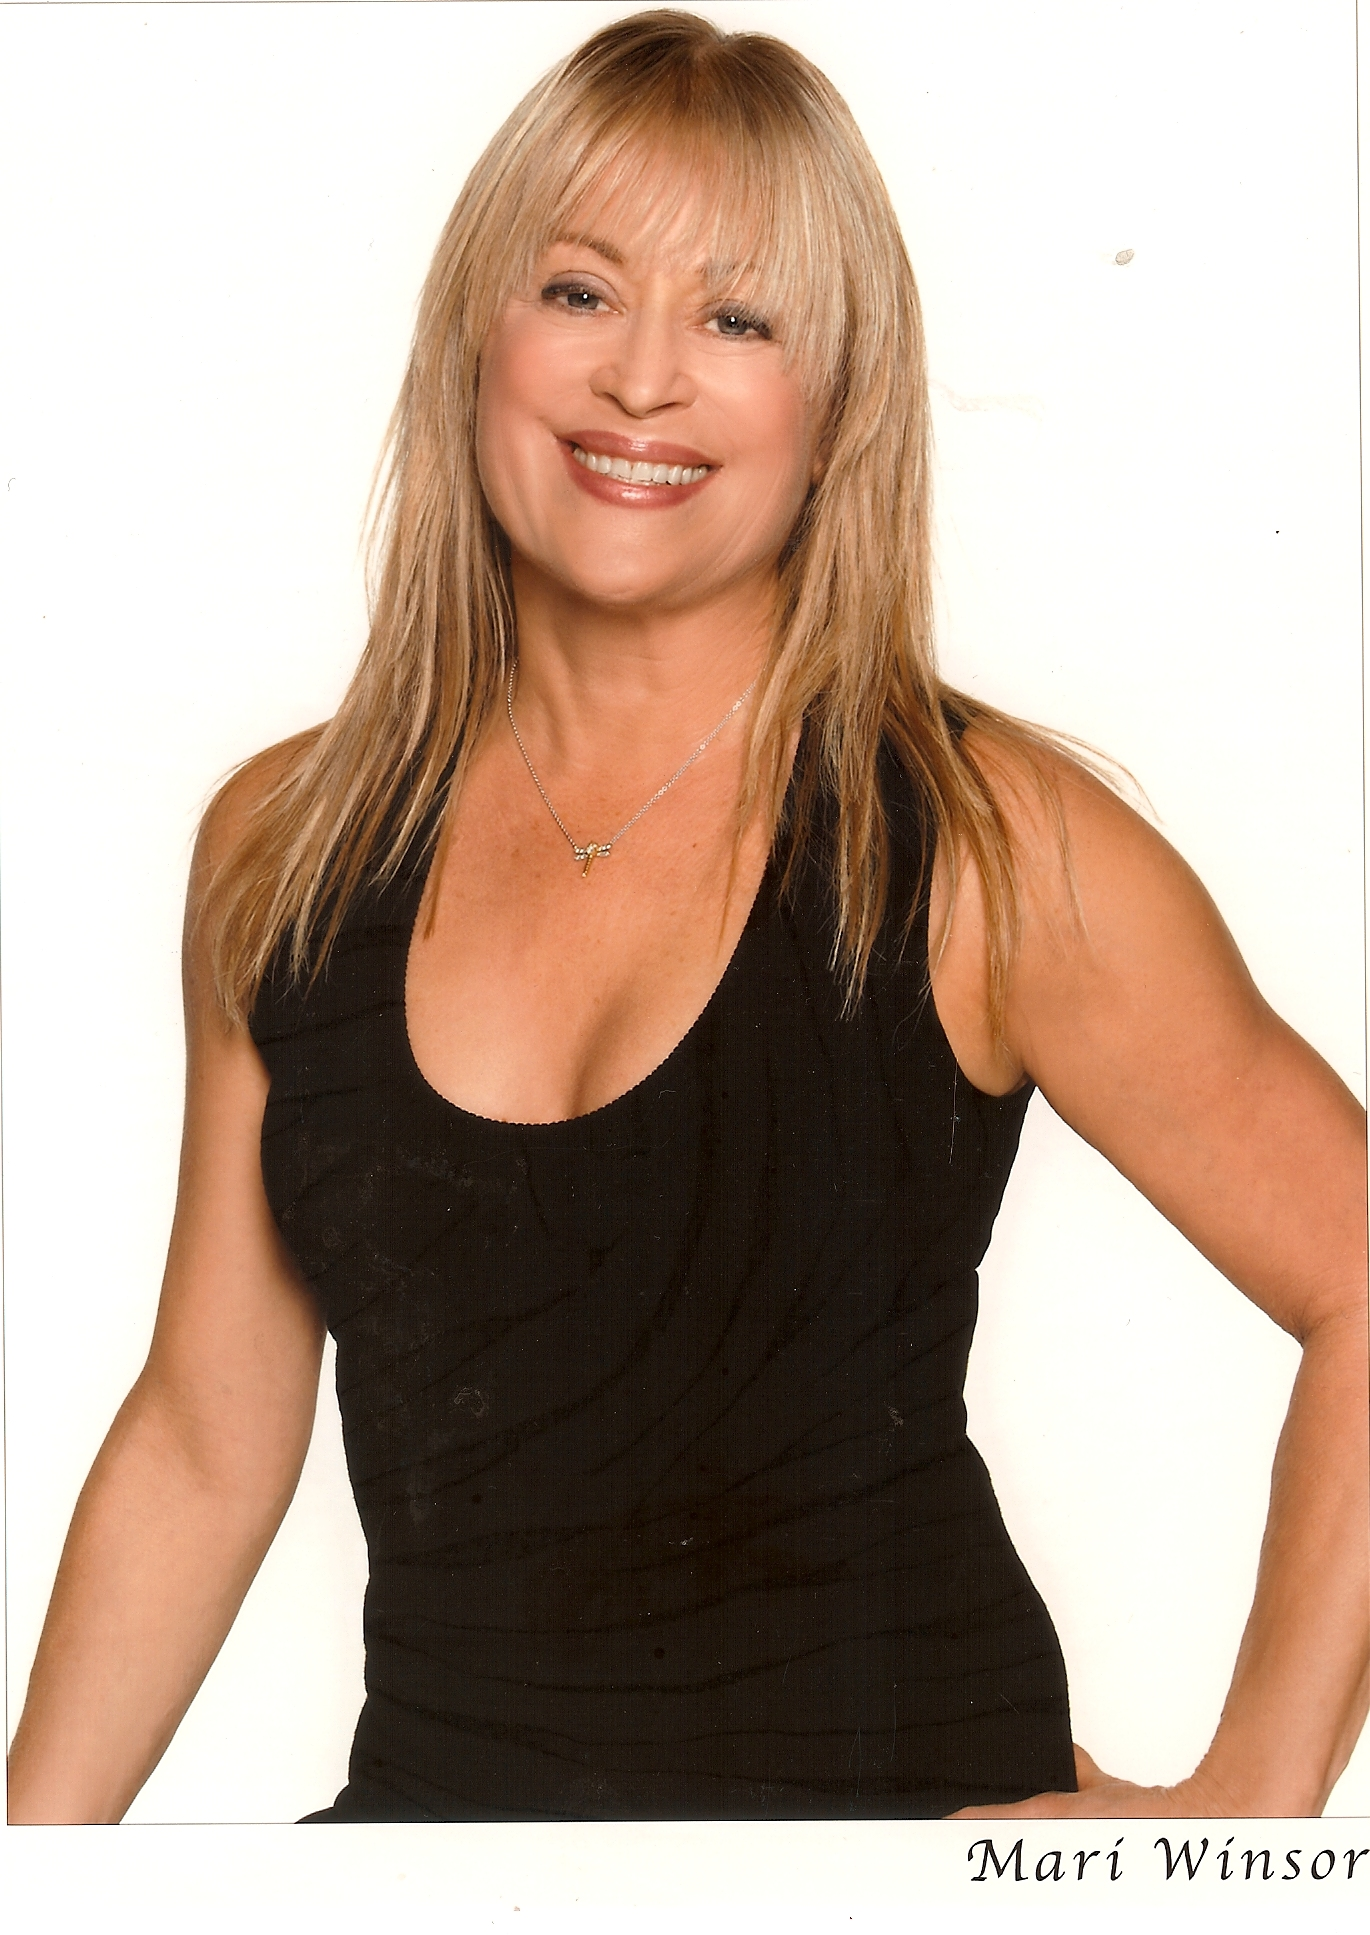 Mari Winsor, Queen of Pilates, on Staying Fit Over Fourty ...